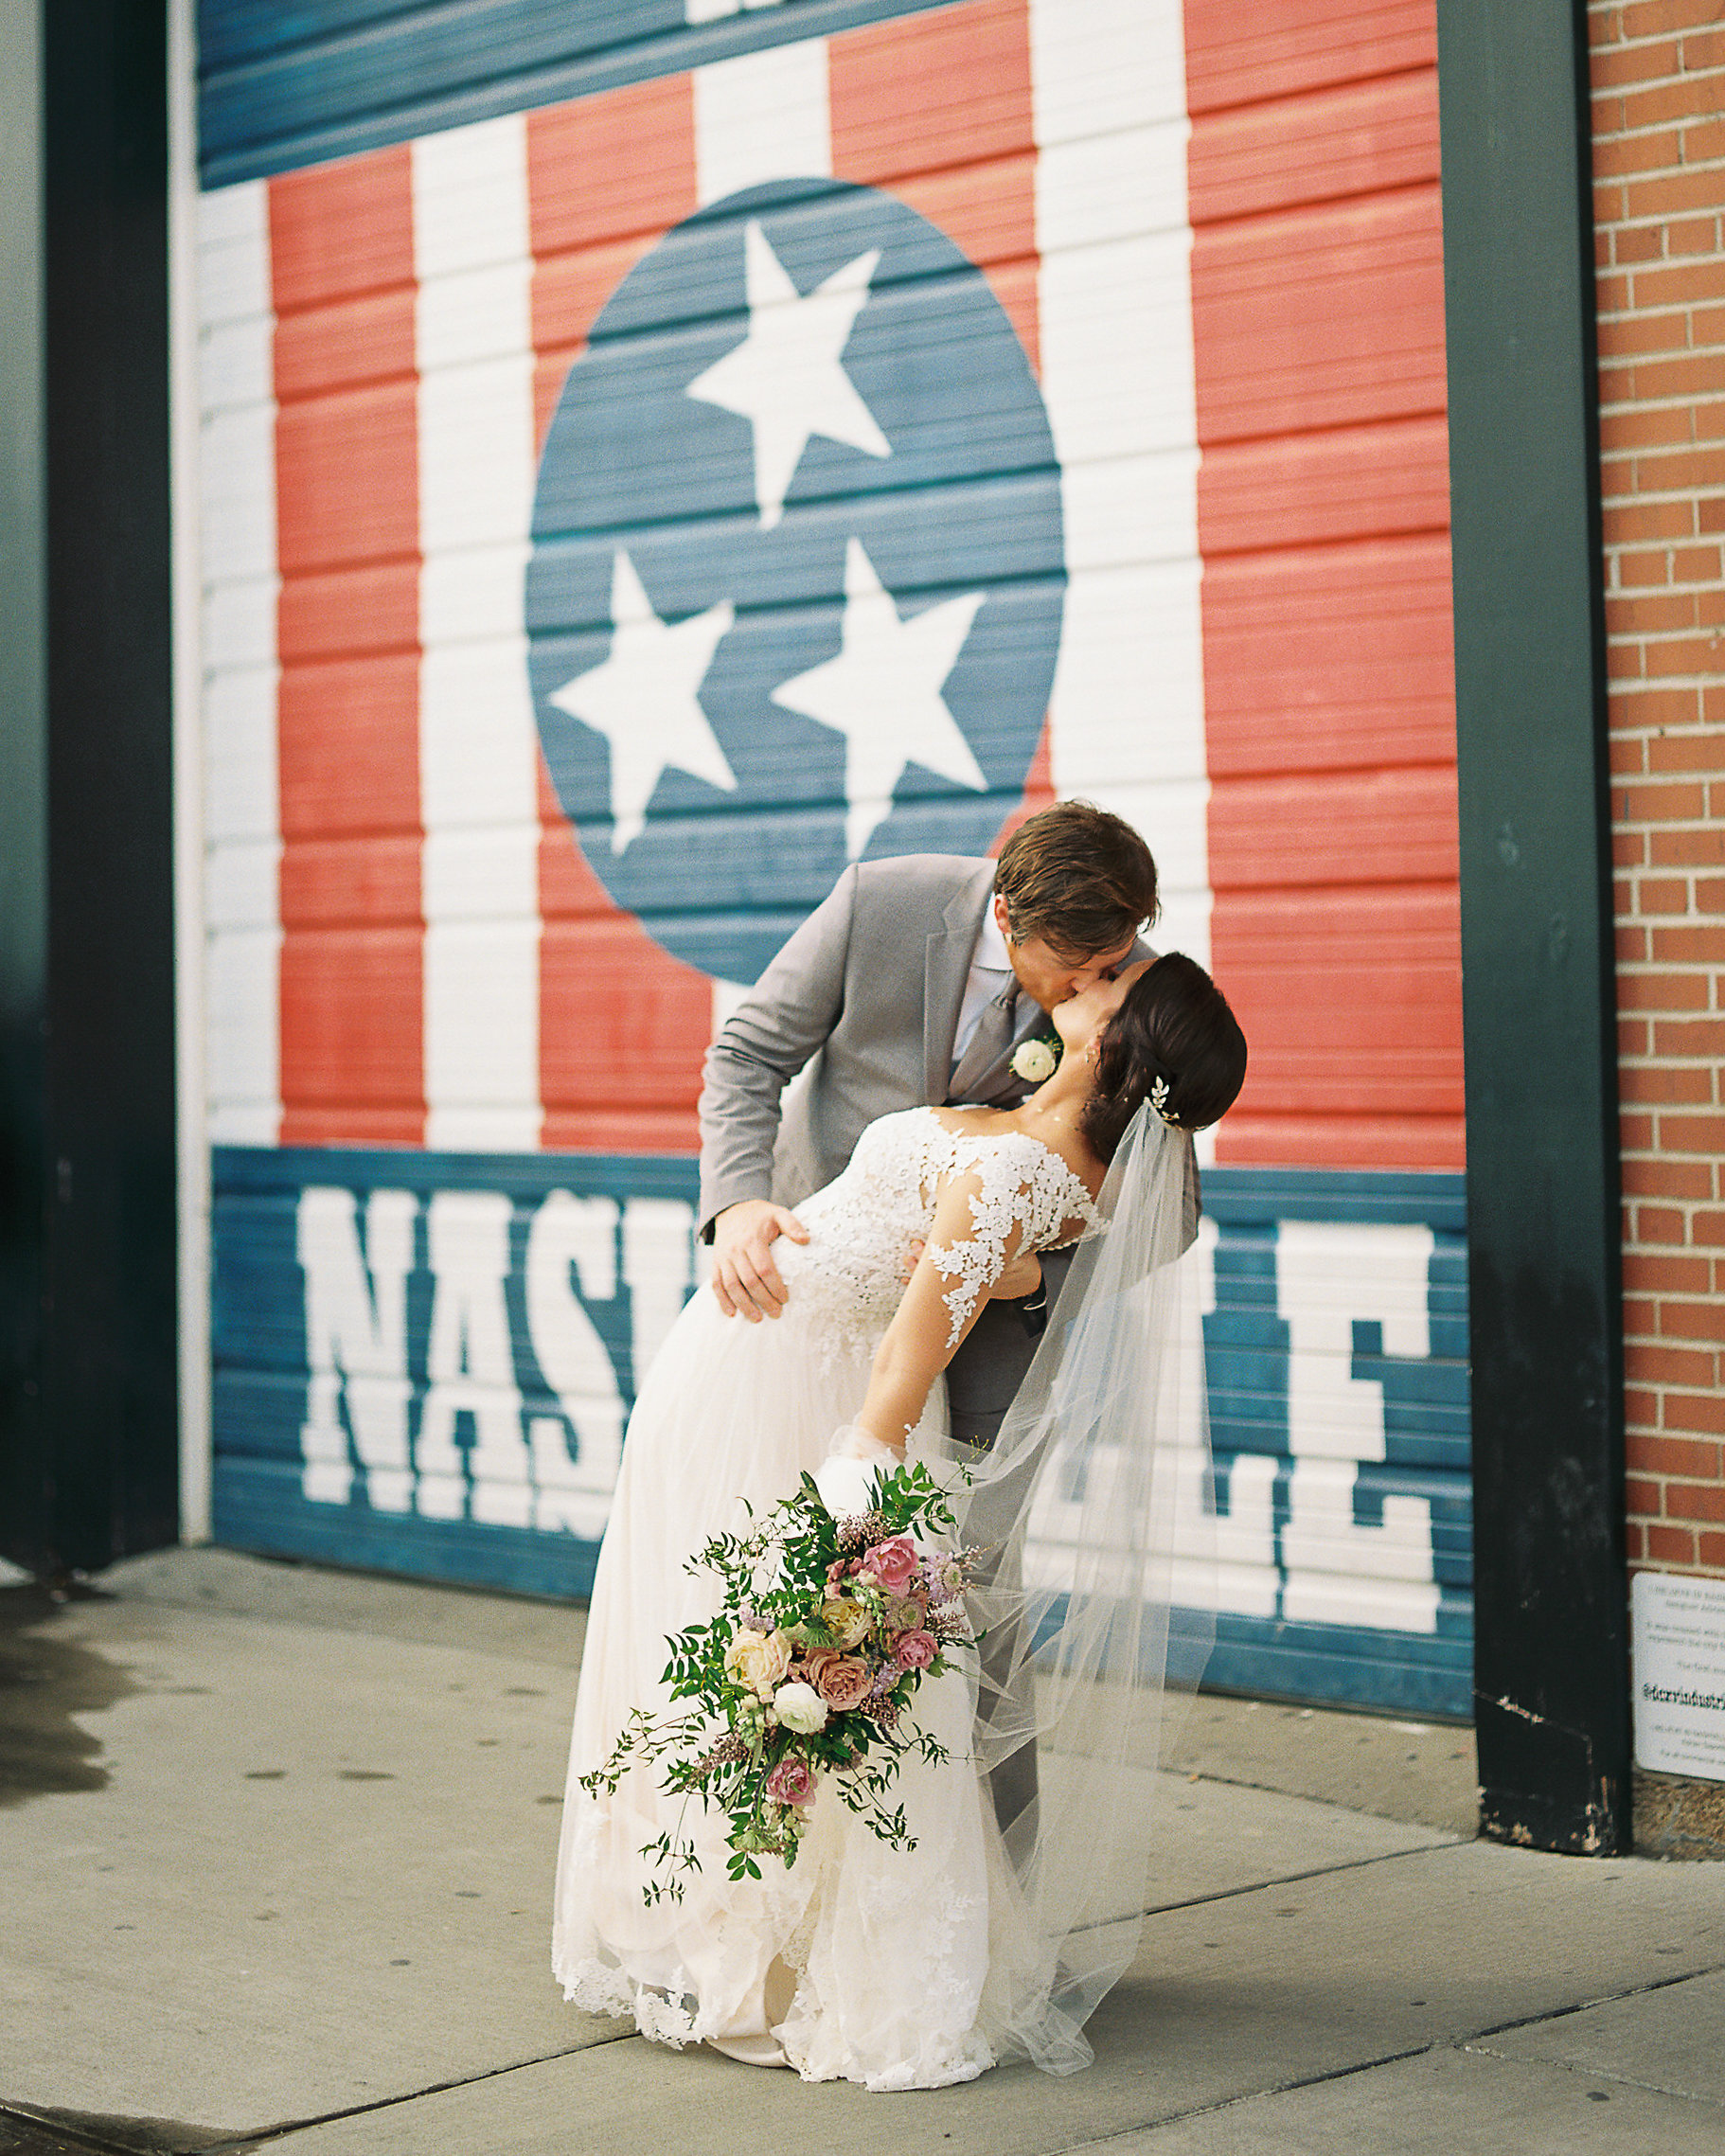 ratcliff_wedding-1419 Emily & Marcus: A Cozy Nashville Wedding Blog Invision Events Weddings    invision_events, birmingham_al, auburn_al, alabama, atlanta_ga, atl, georgia, wedding_planner, wedding_designer, weddings, photography, wedding_planning